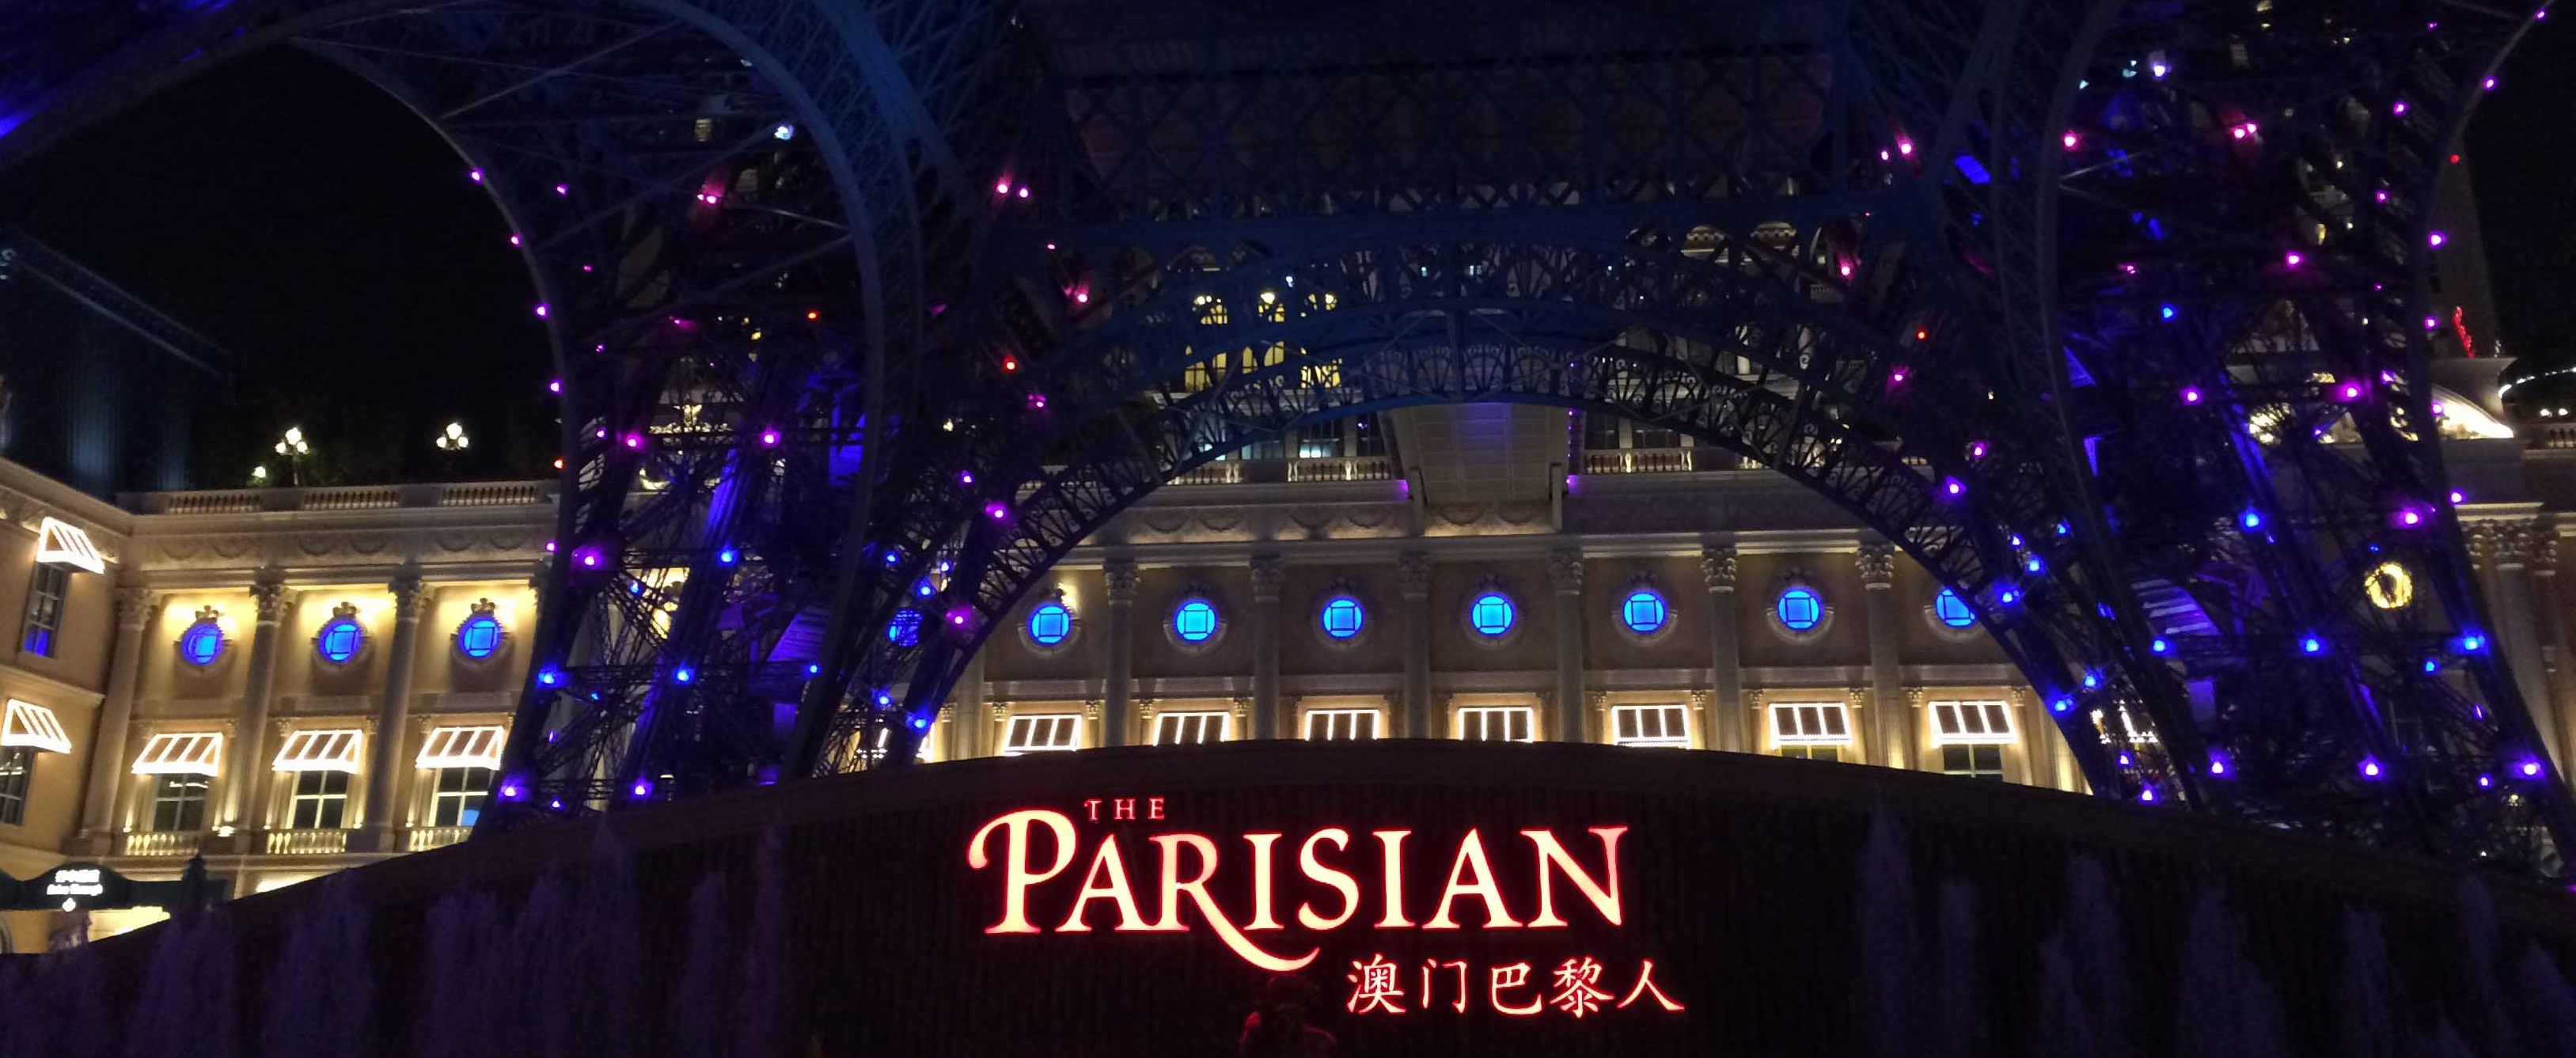 The Parisian Macao: Full of Luxurious Experiences